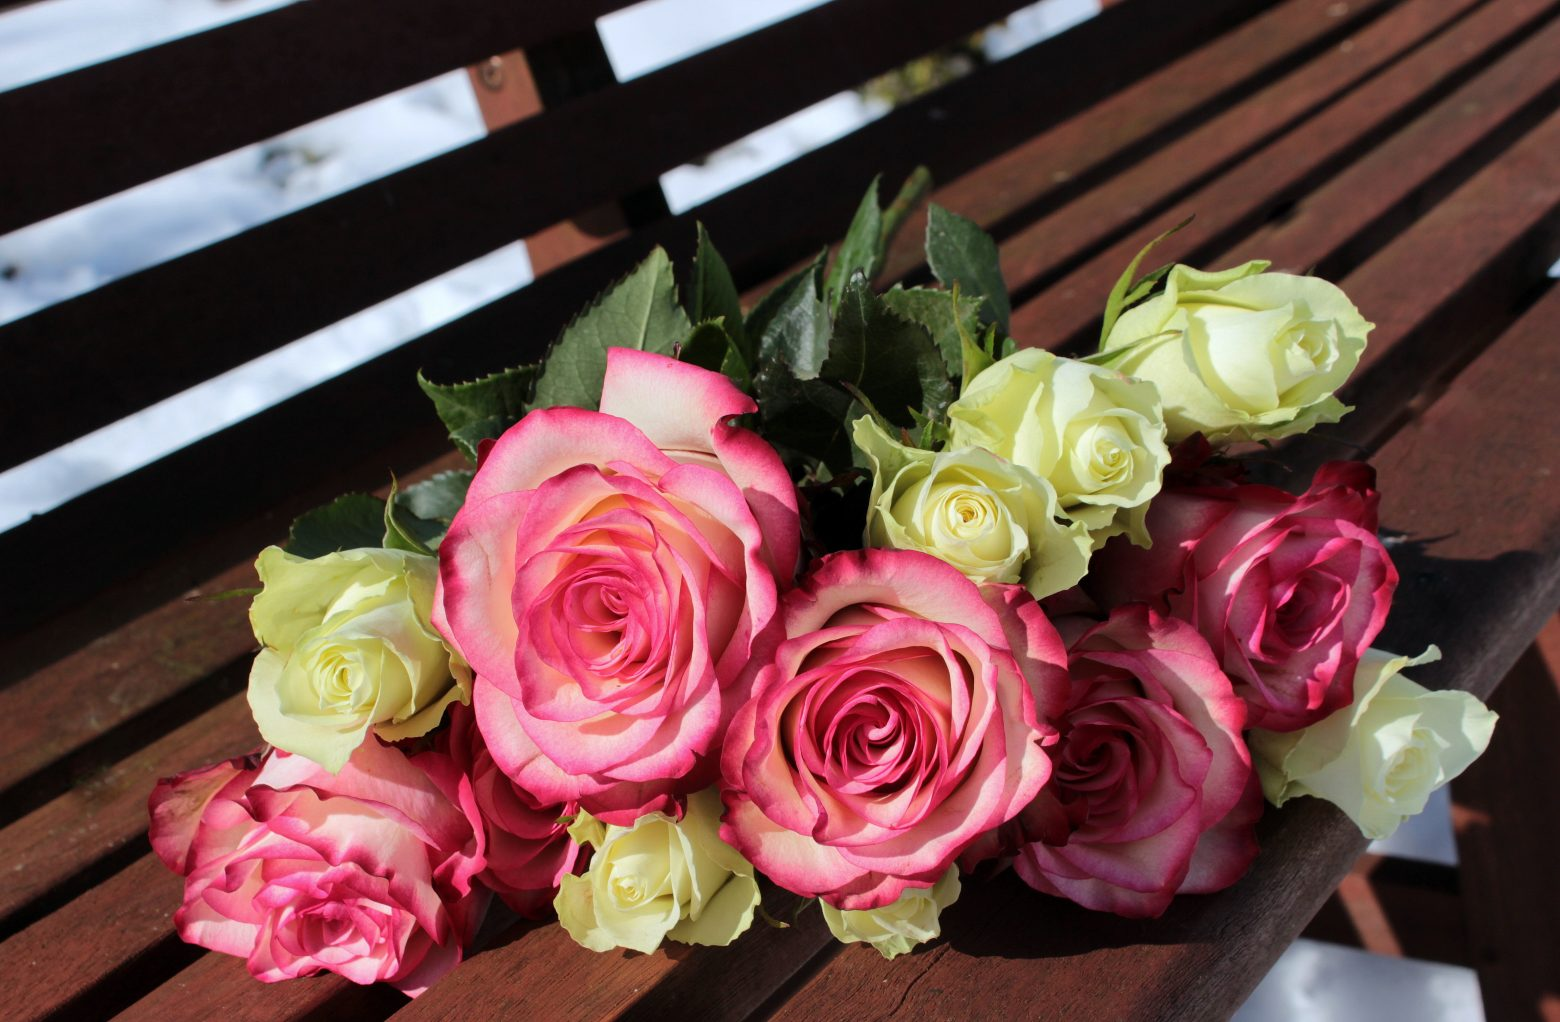 bouquet-of-roses-1246490